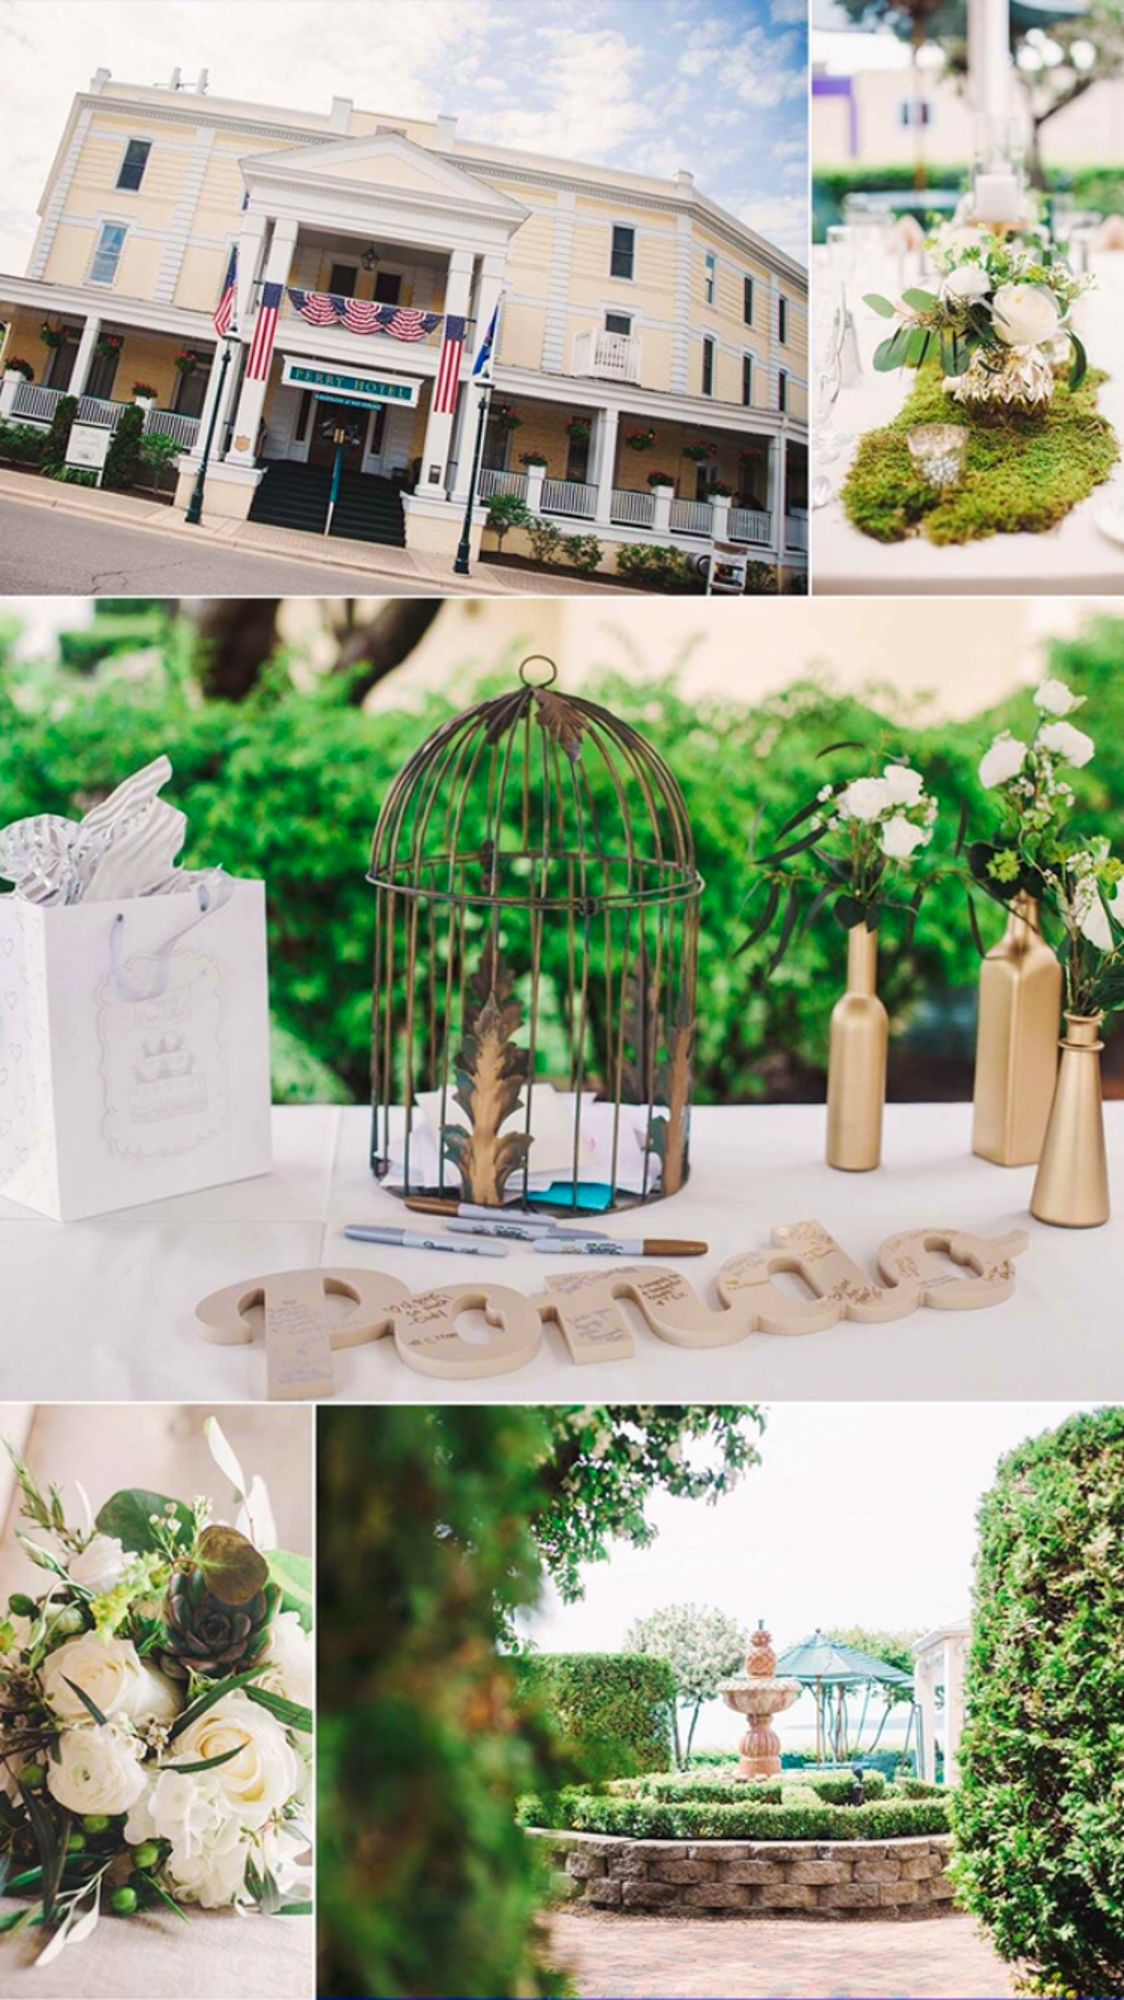 Homemade wedding decoration ideas  Browse Hundreds of Unique Wedding Decor Ideas u Get Inspired Custom